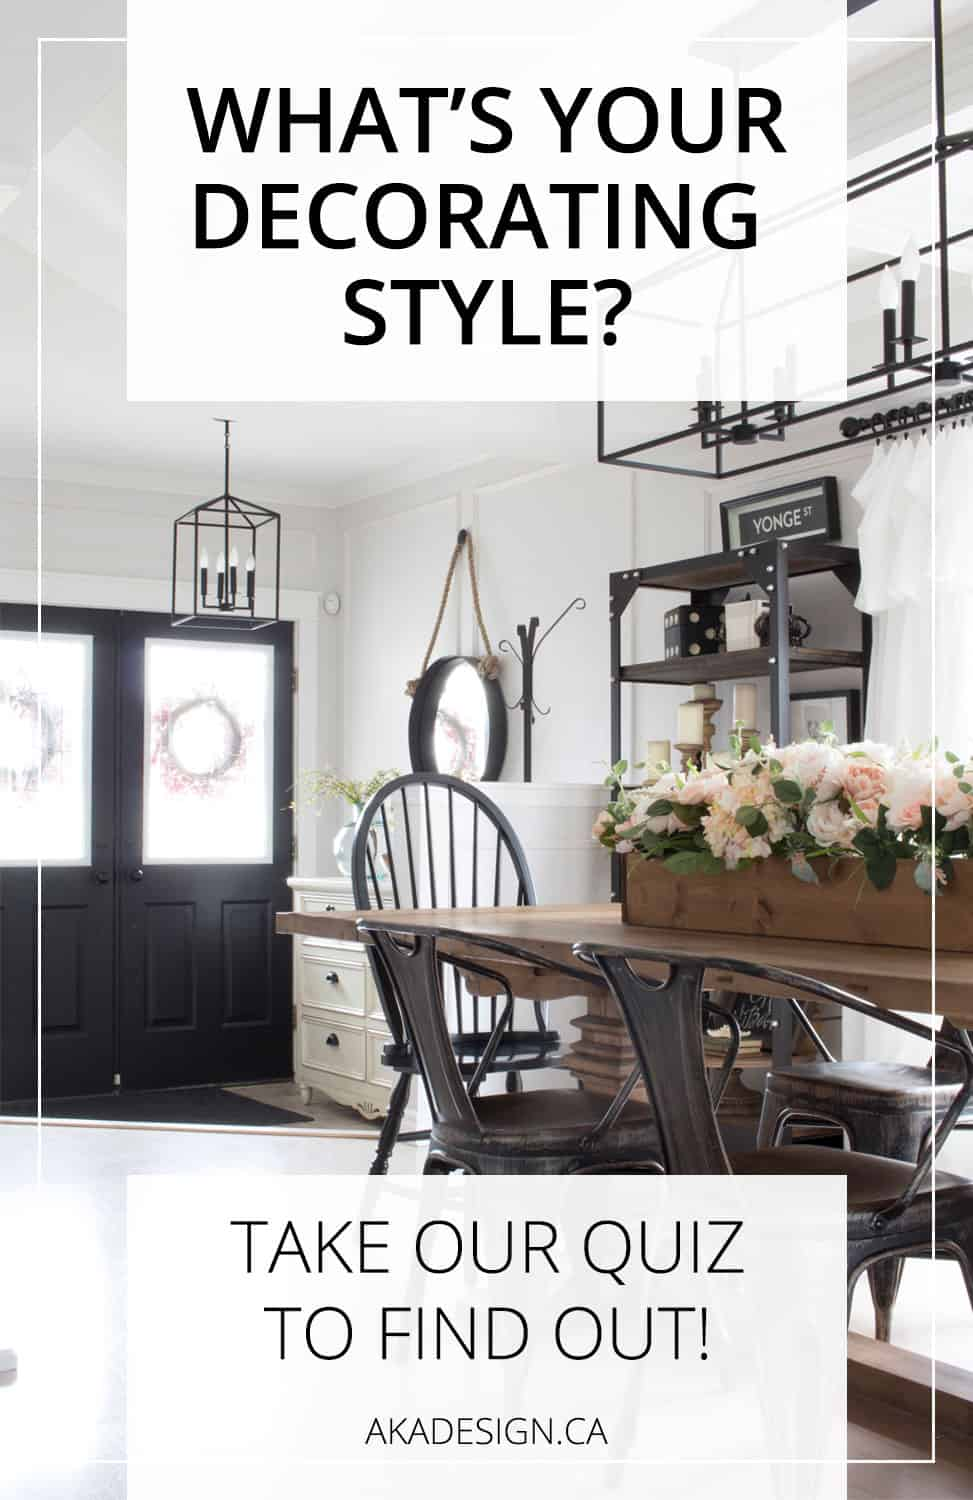 What 39 s your decorating style quiz for Decorating quins